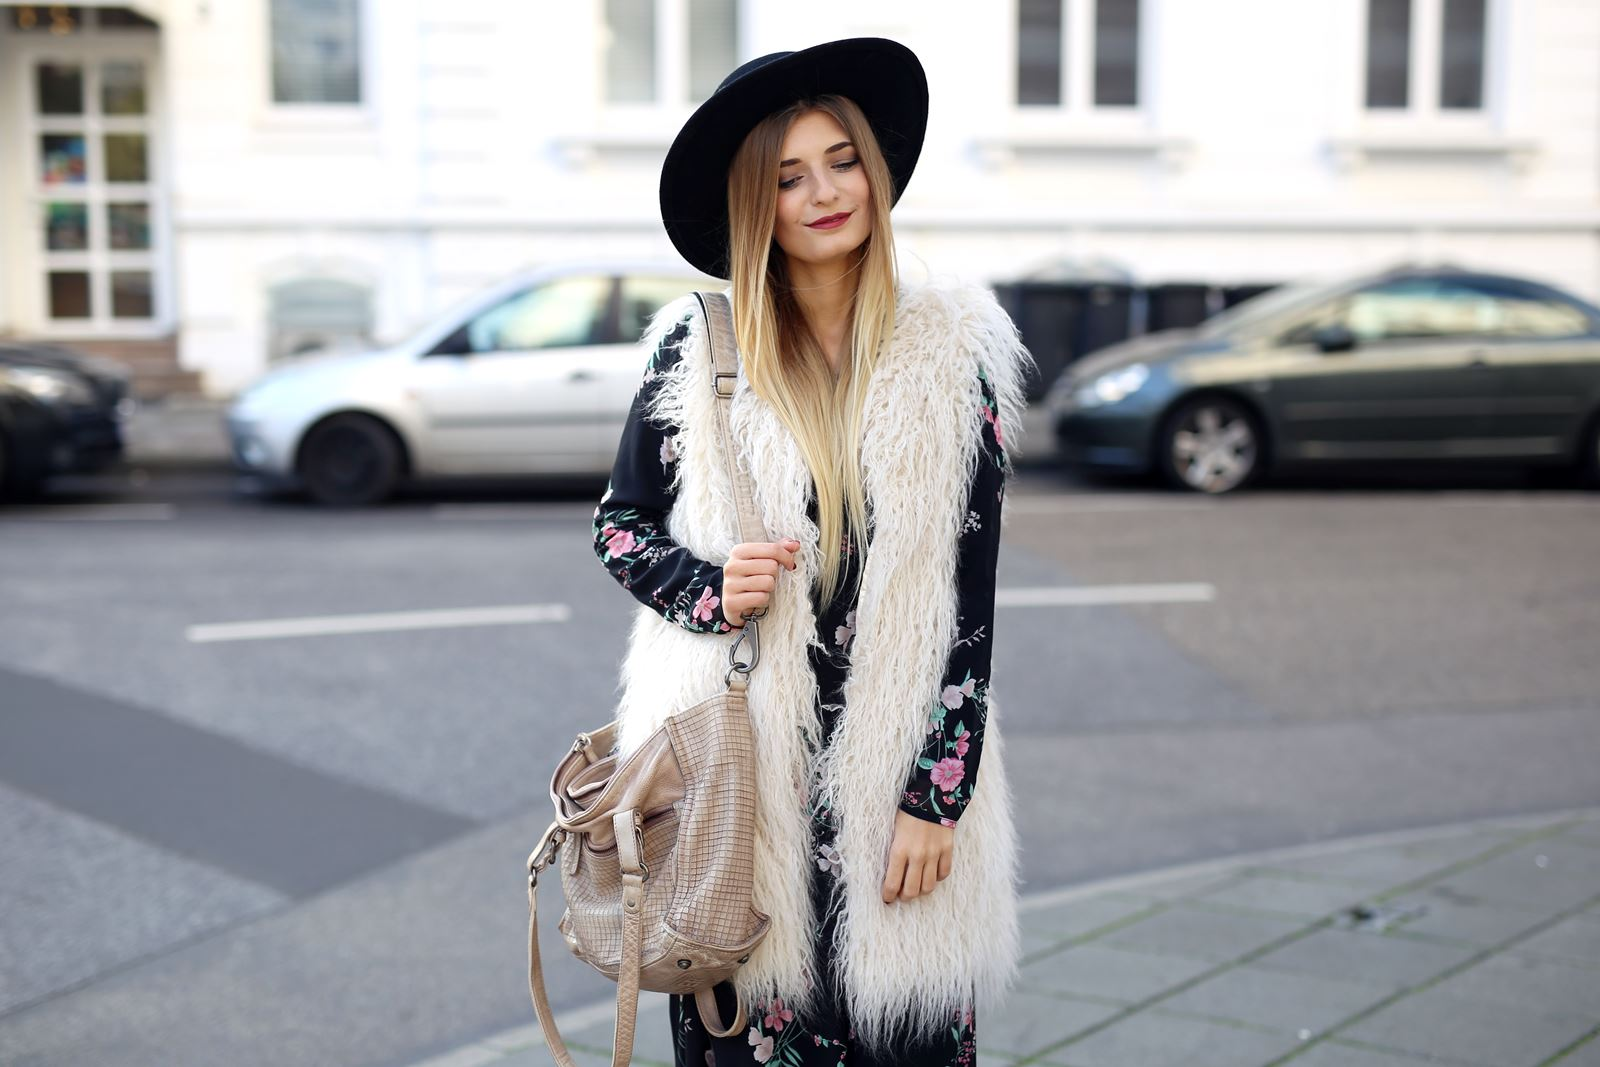 modeblog-fashion-blog-outfit-herbst-fake-fur-maxi-kleid-5